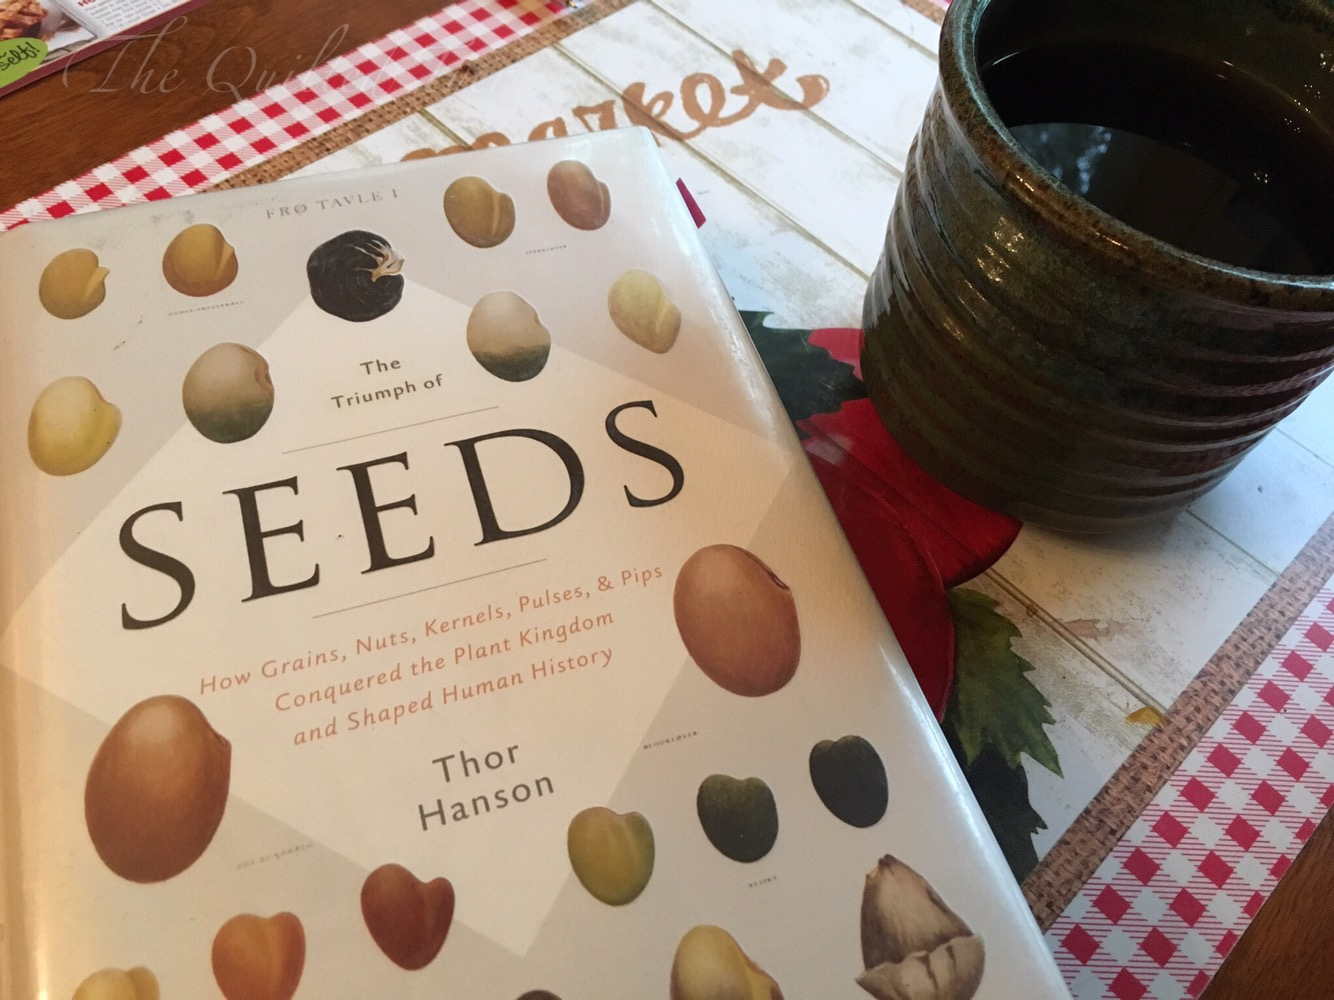 https://thequiltedtyer.wordpress.com/a-little-bit-of-everything-else/book-reviews/the-triumph-of-seeds/